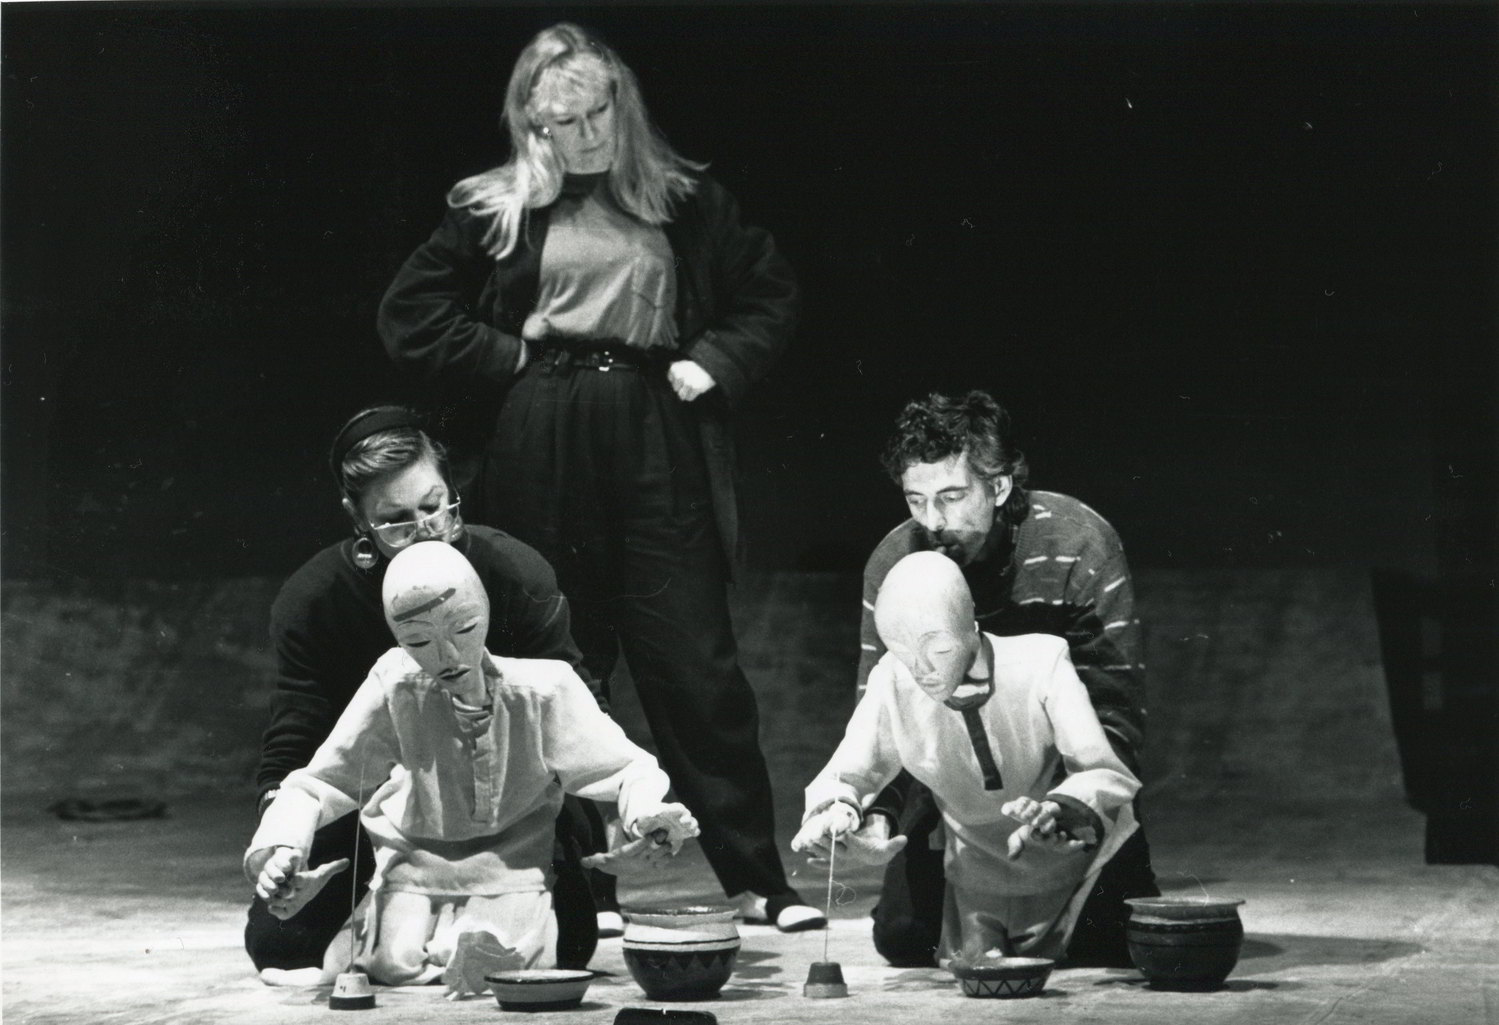 black & white photo of director standing behind 2 puppeteers & their puppets rehearsing a dining scene